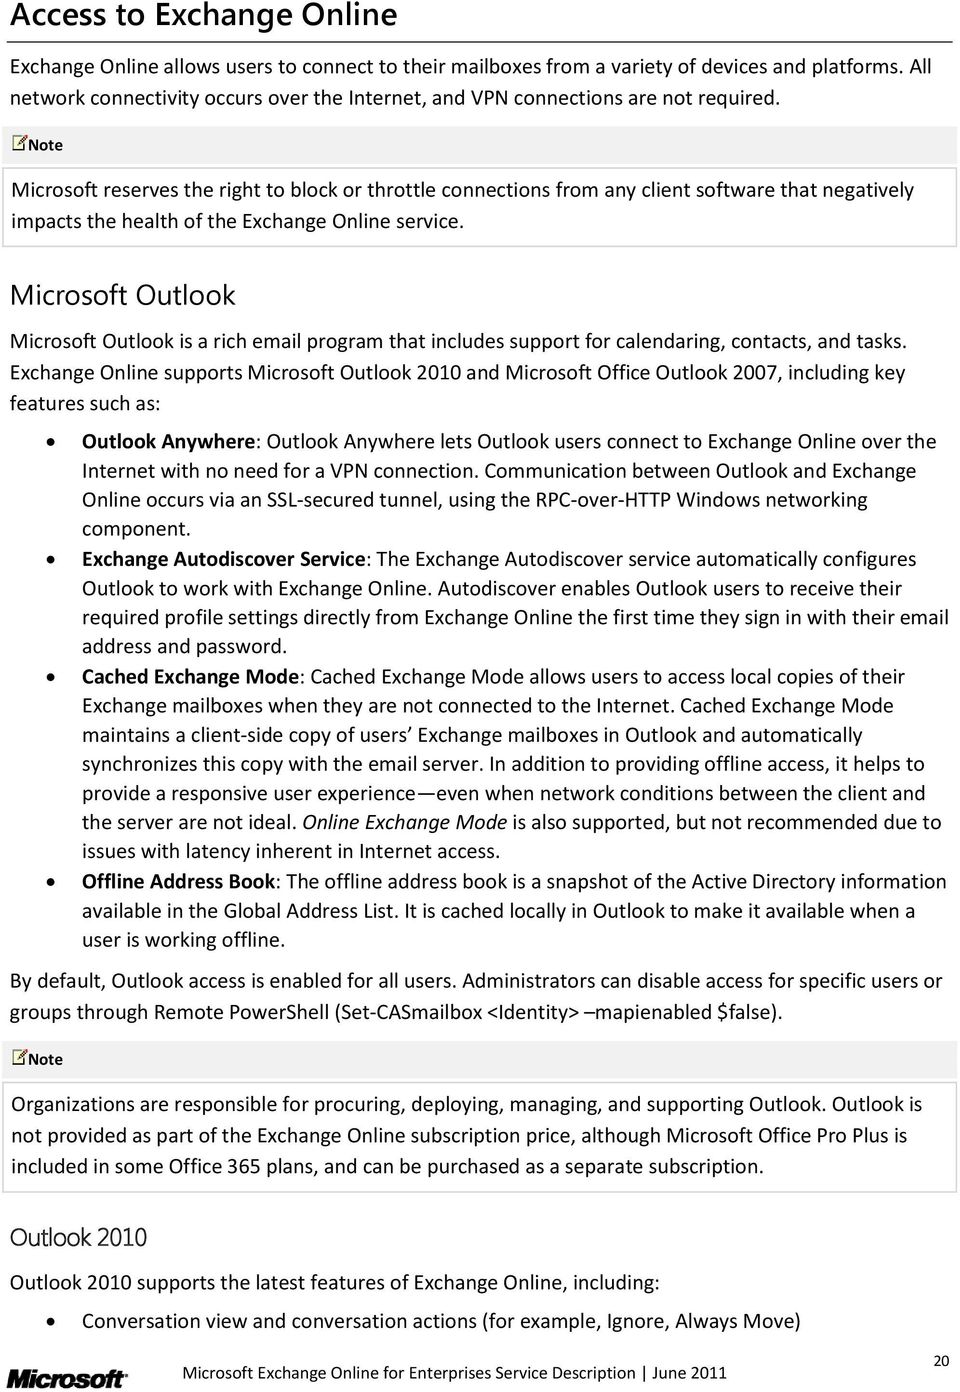 Microsoft Exchange Online for Enterprises - PDF